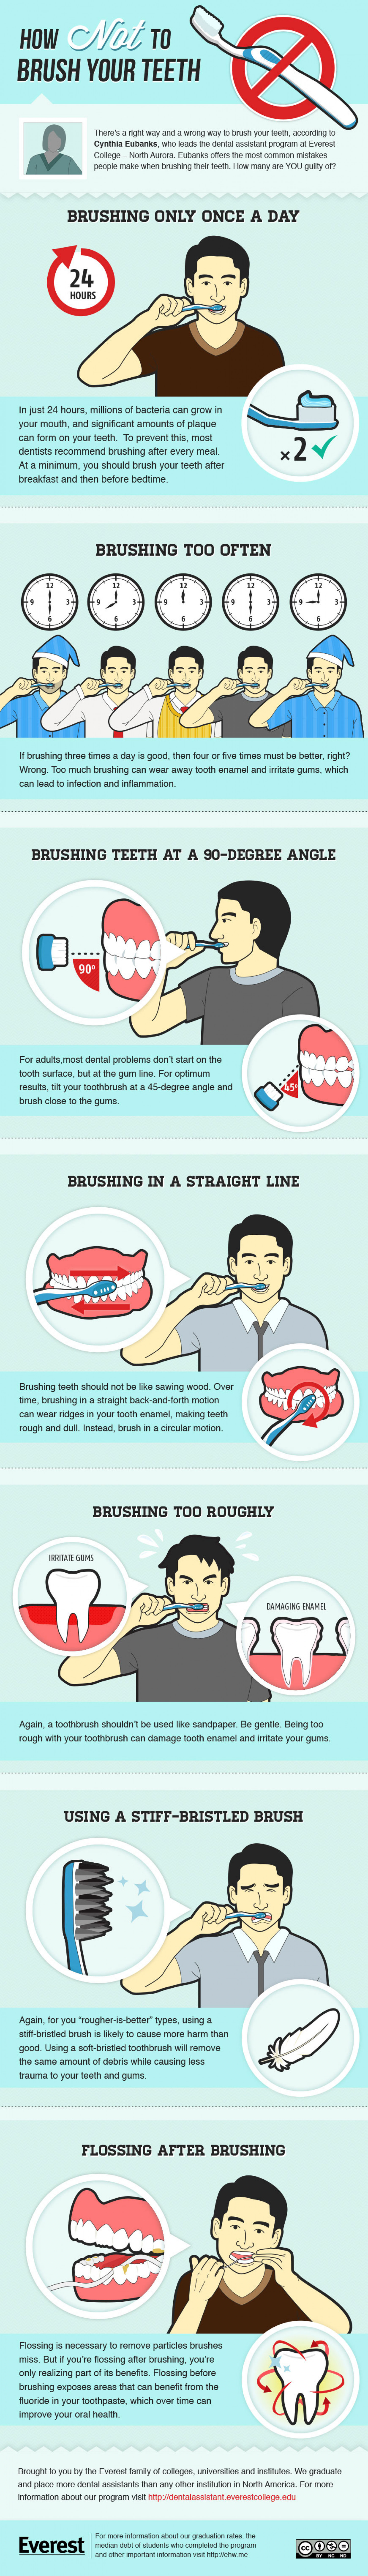 How Not to Brush Your Teeth Infographic